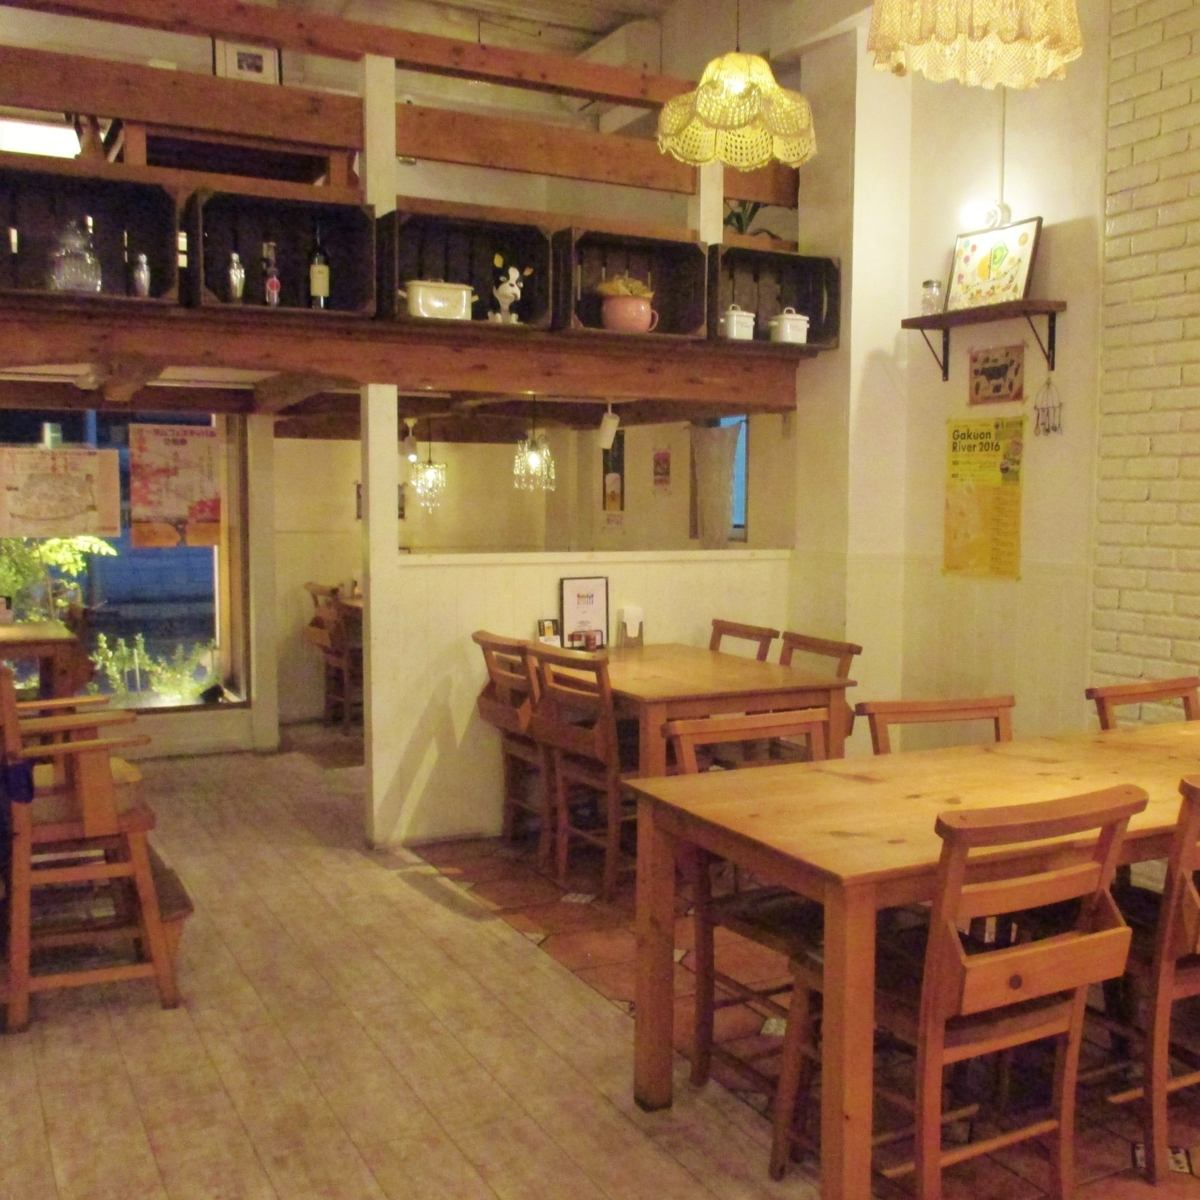 Popular among girls ☆ Atmosphere that loft seats also ◎ Bistro